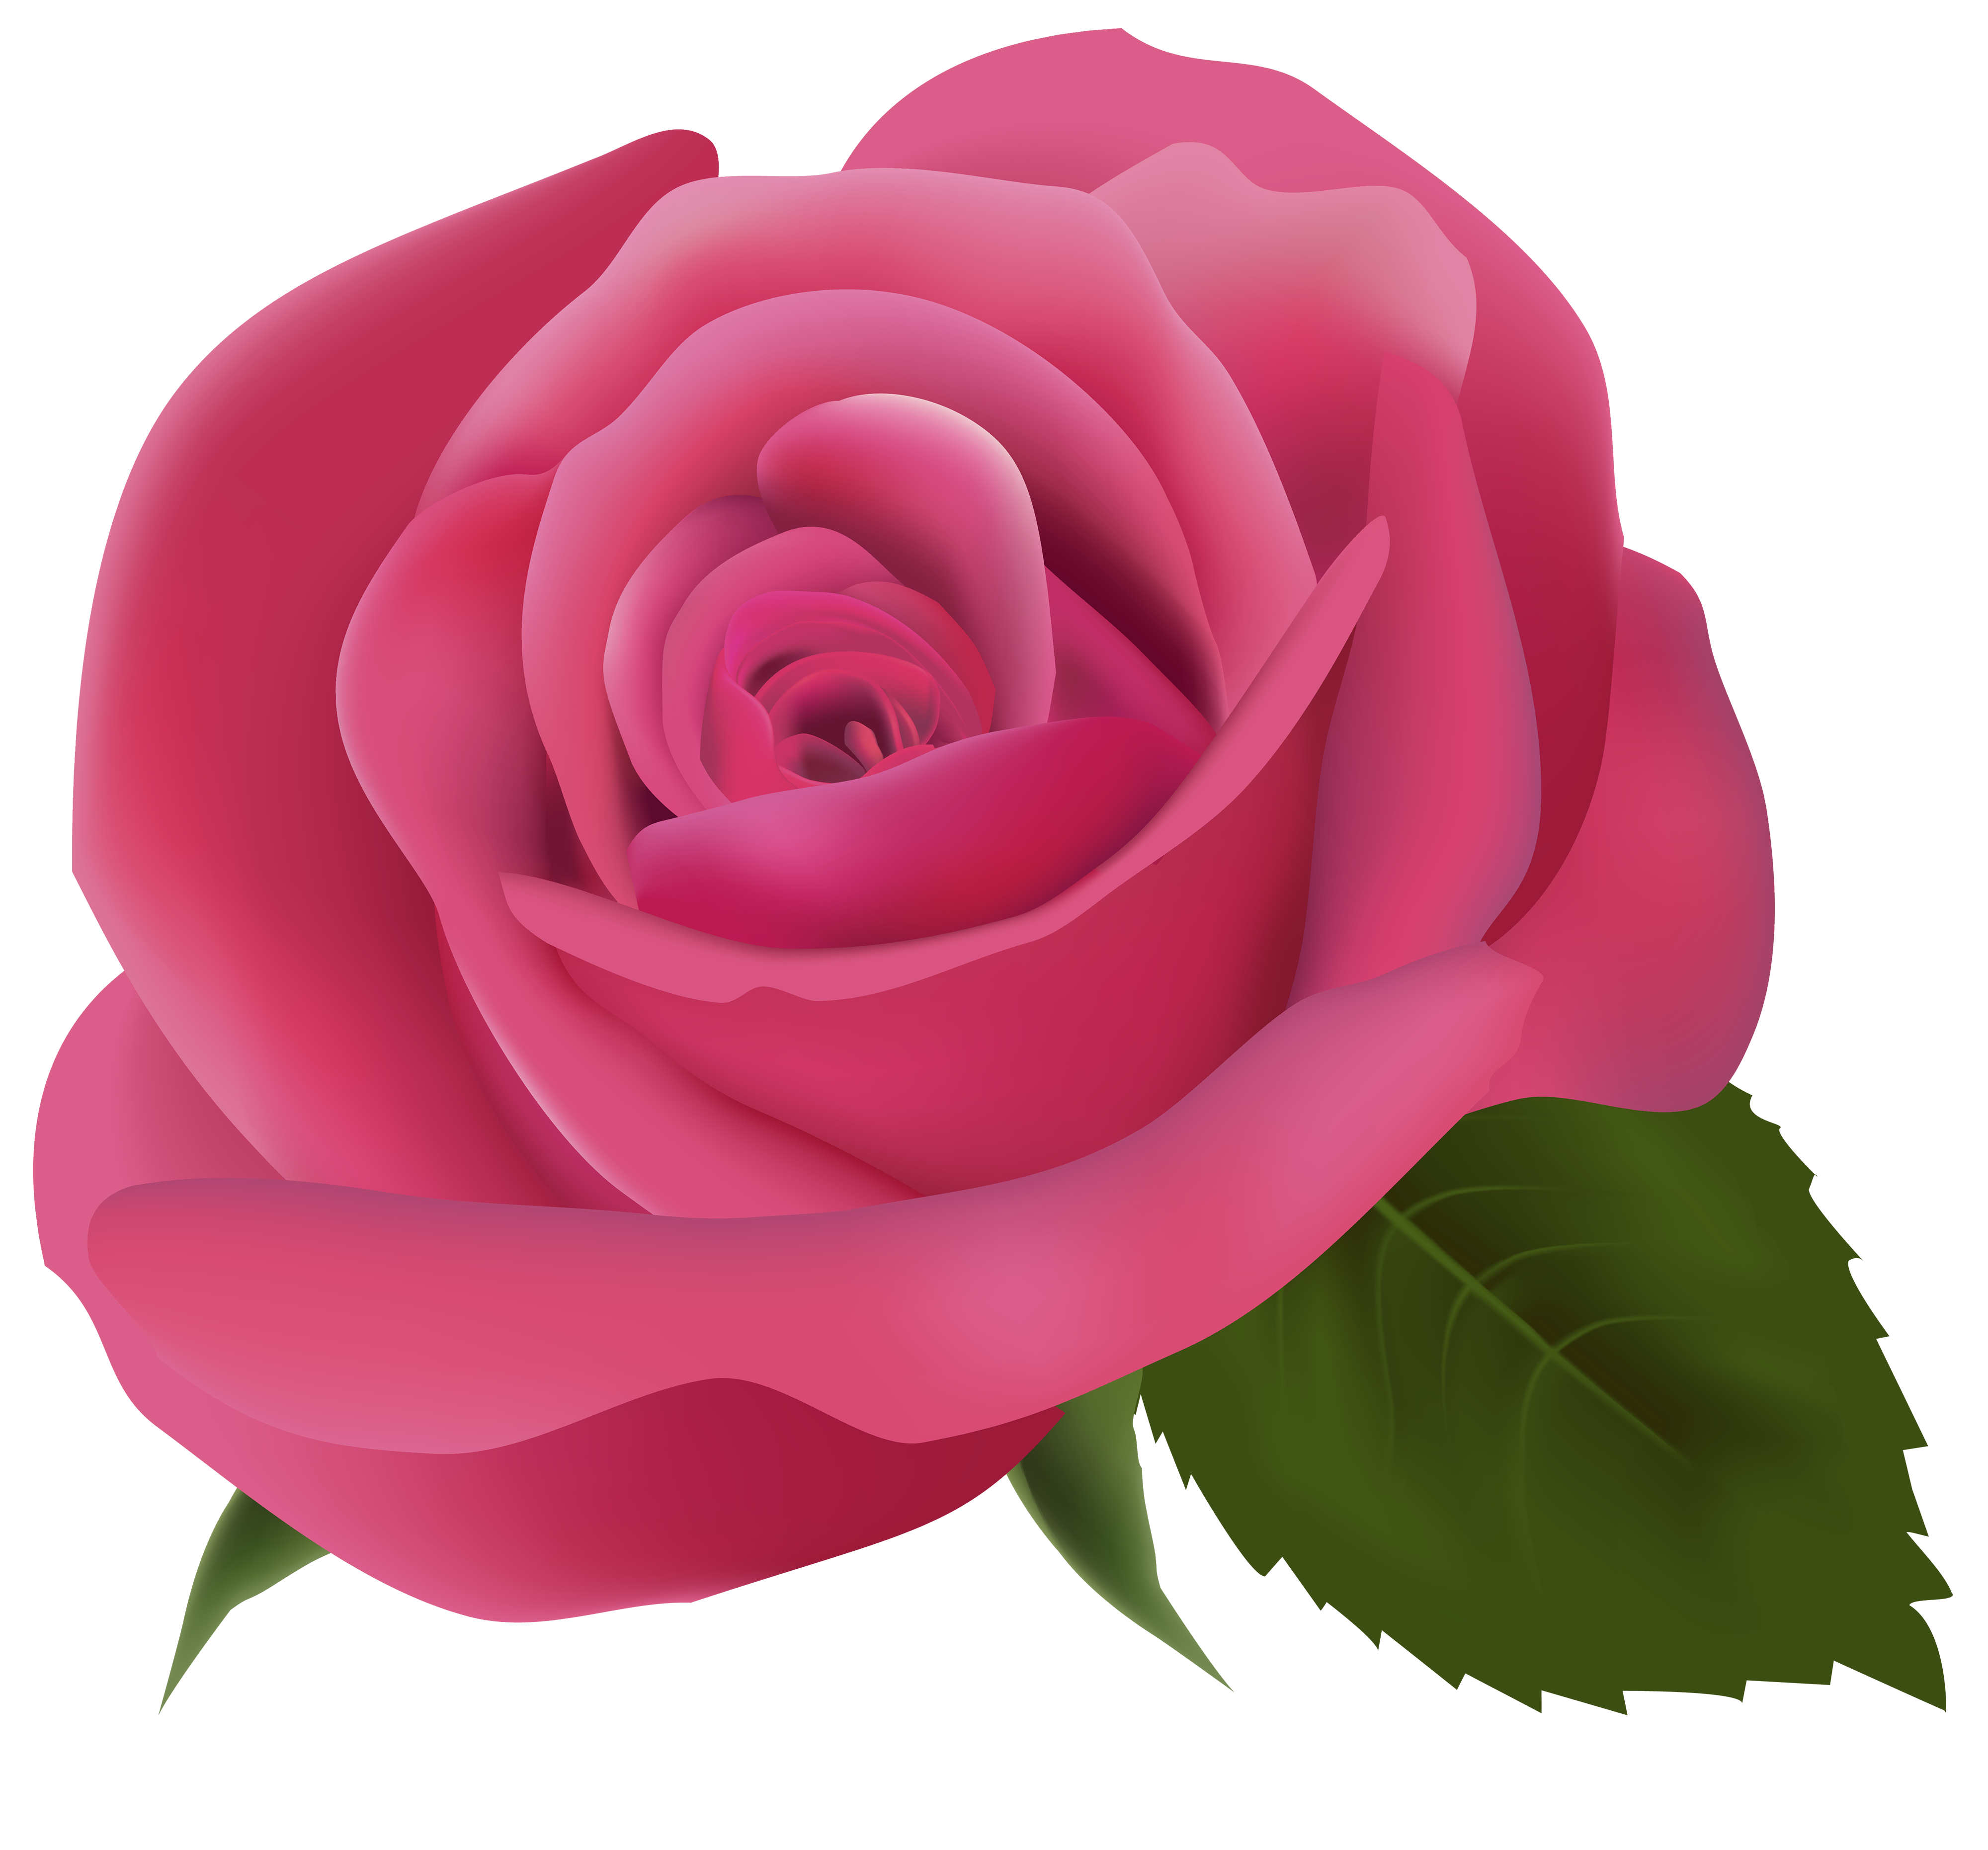 Clipart roses clear background. Pink clip art rose